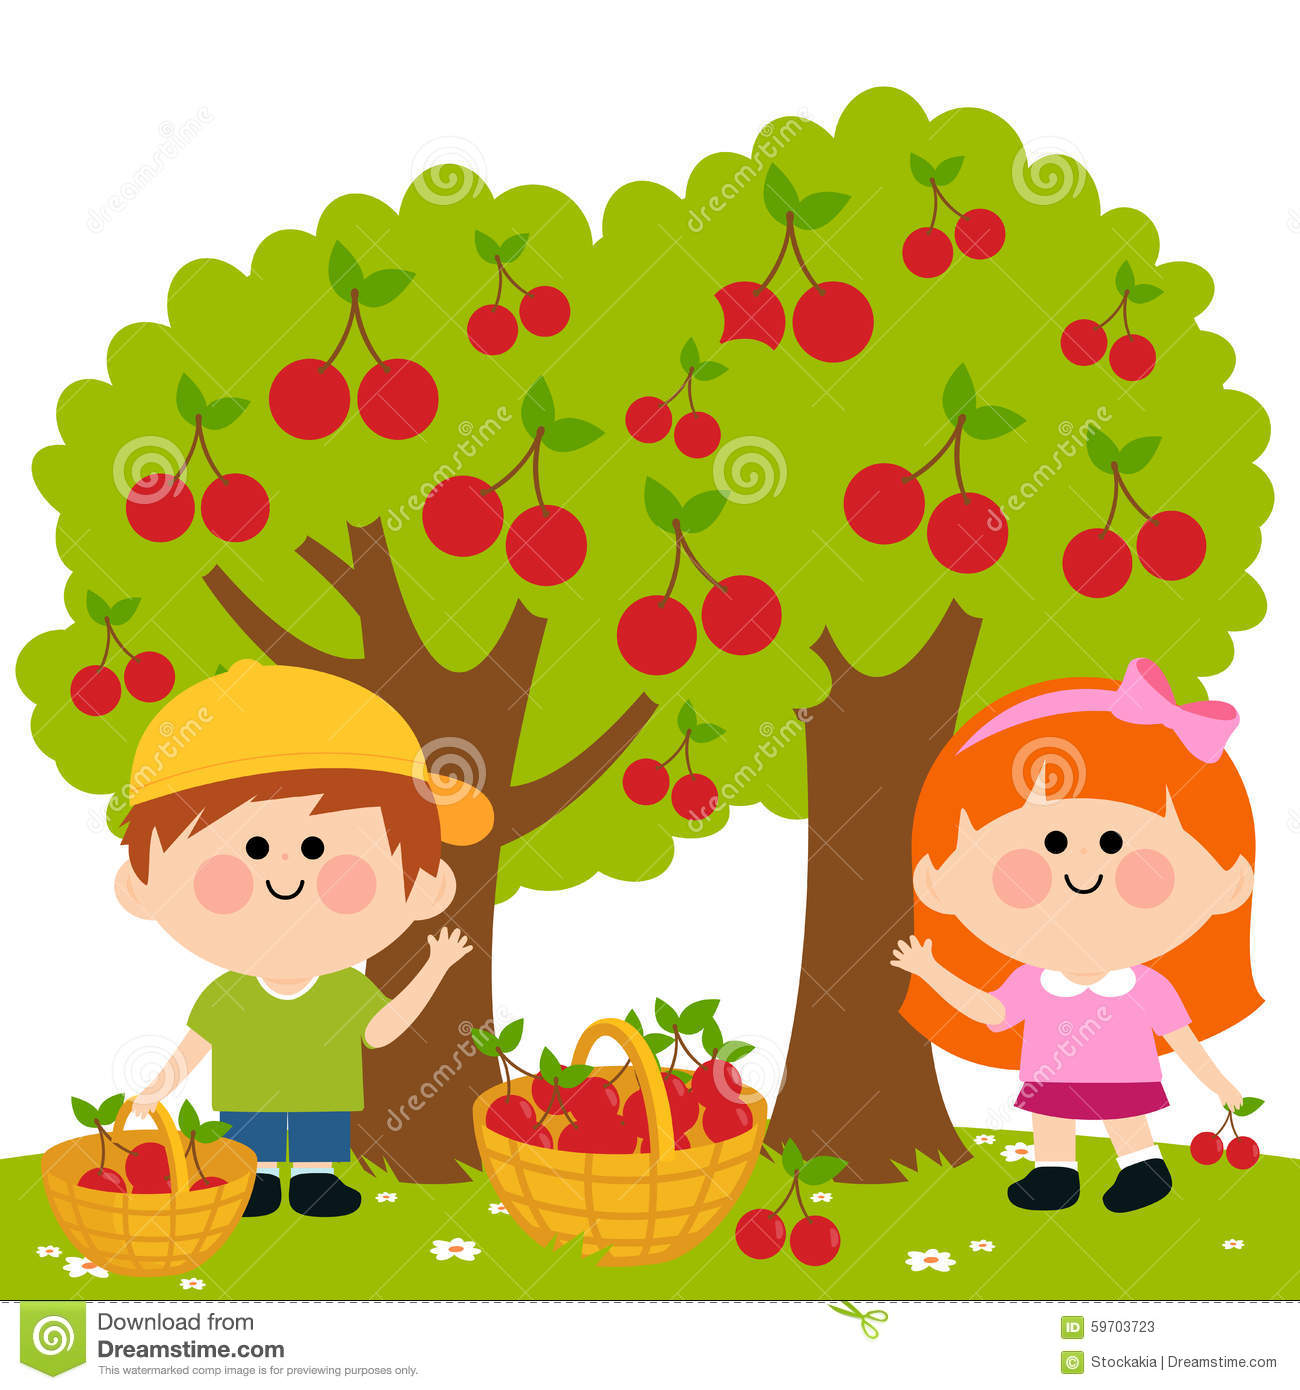 2017 Shop Ban Do I Am Very Busy Agenda furthermore Stock Illustration Kids Harvesting Cherries Vector Illustration Two Children Boy Girl Picking Under Cherry Trees Image59703723 in addition Thank You Bubble Letters as well P1022 further Graffiti Abc. on two coloring page